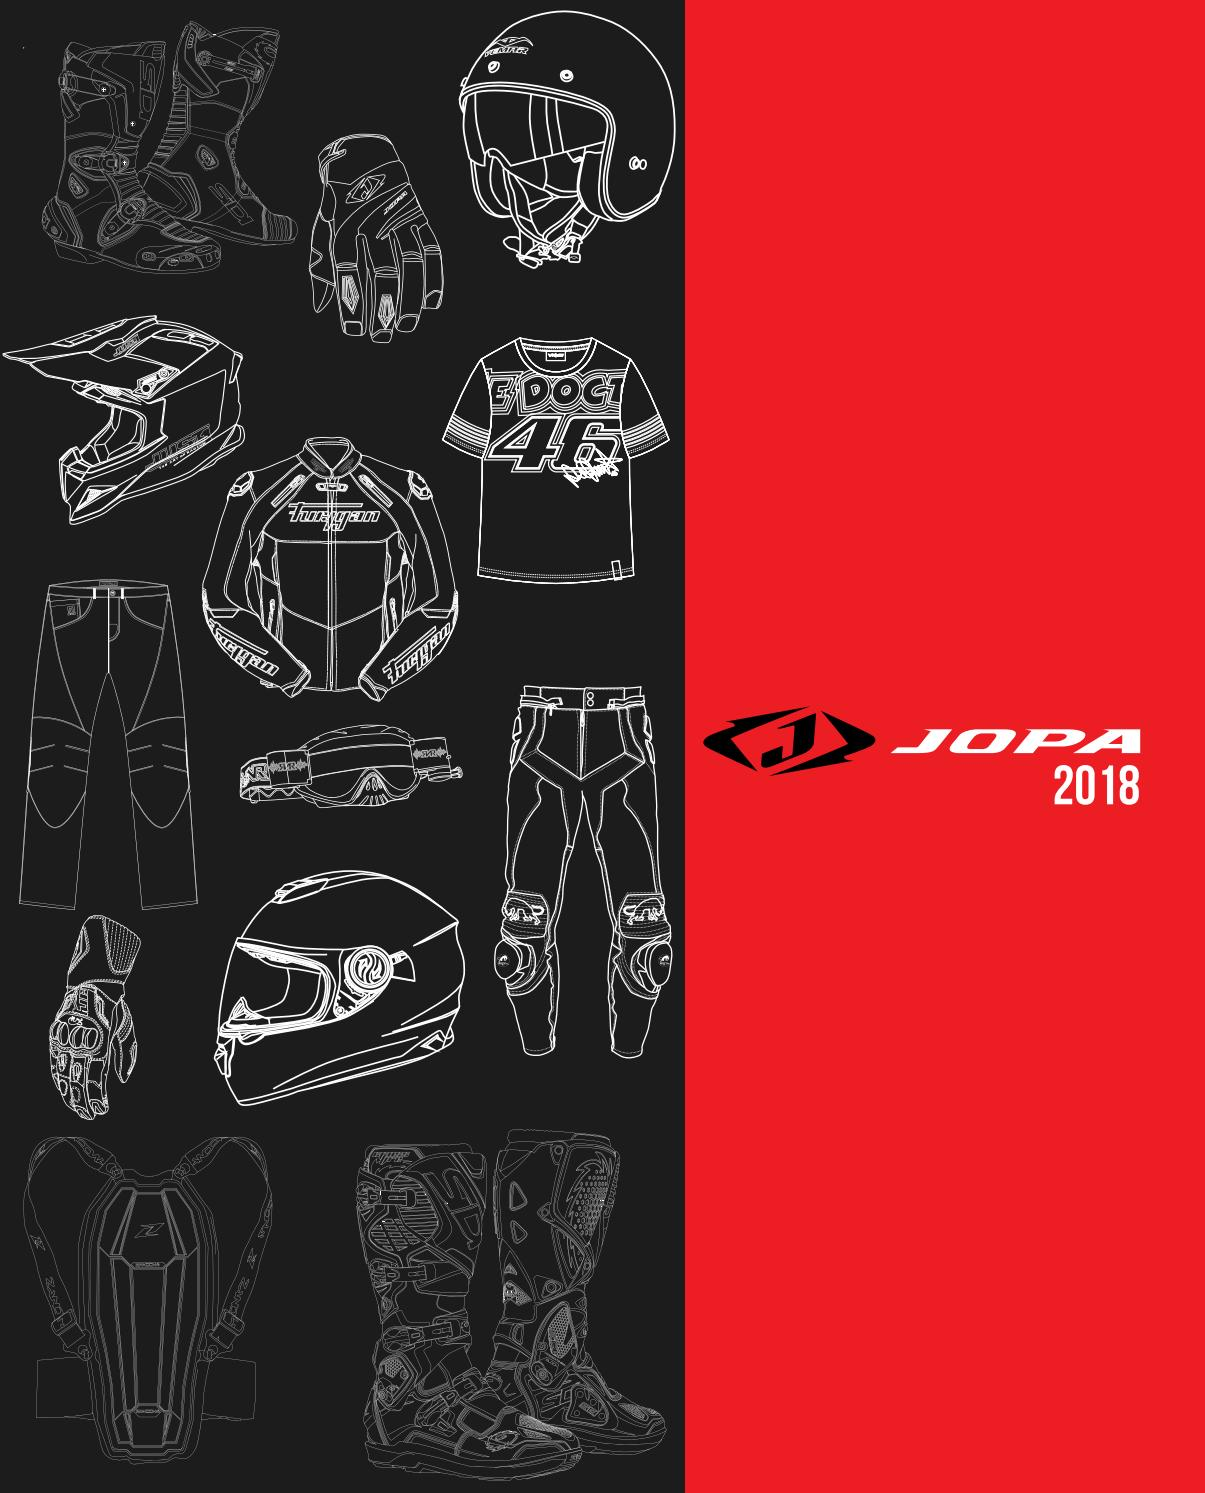 CAN-AM X-Racing Gants avec velcro et Grip ATV Quad